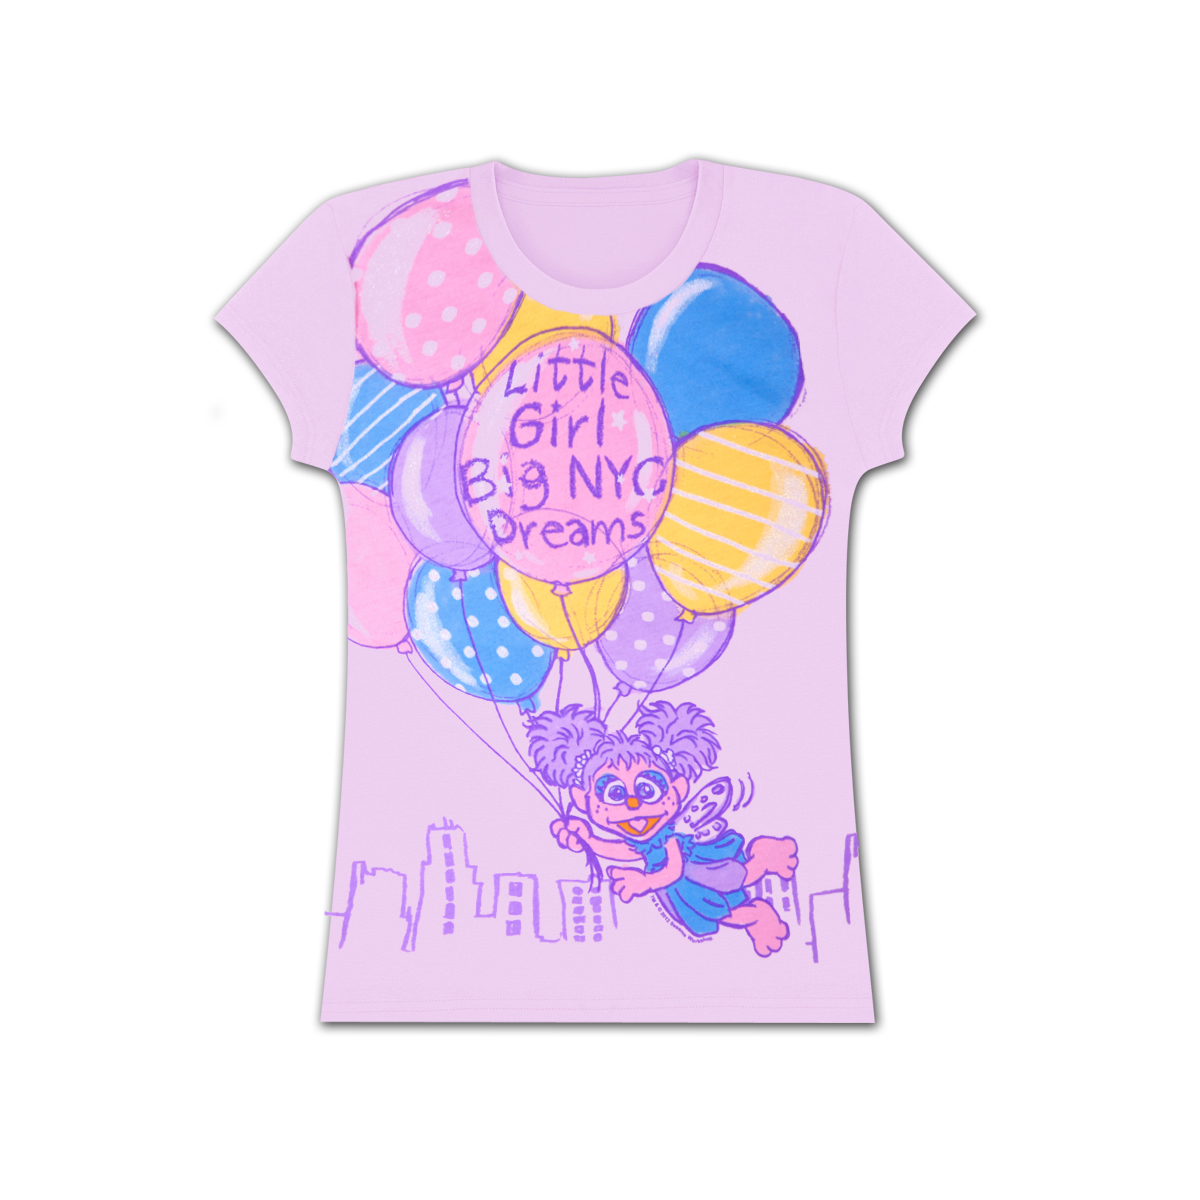 Abby Little Girl, Big NYC Dreams Tee